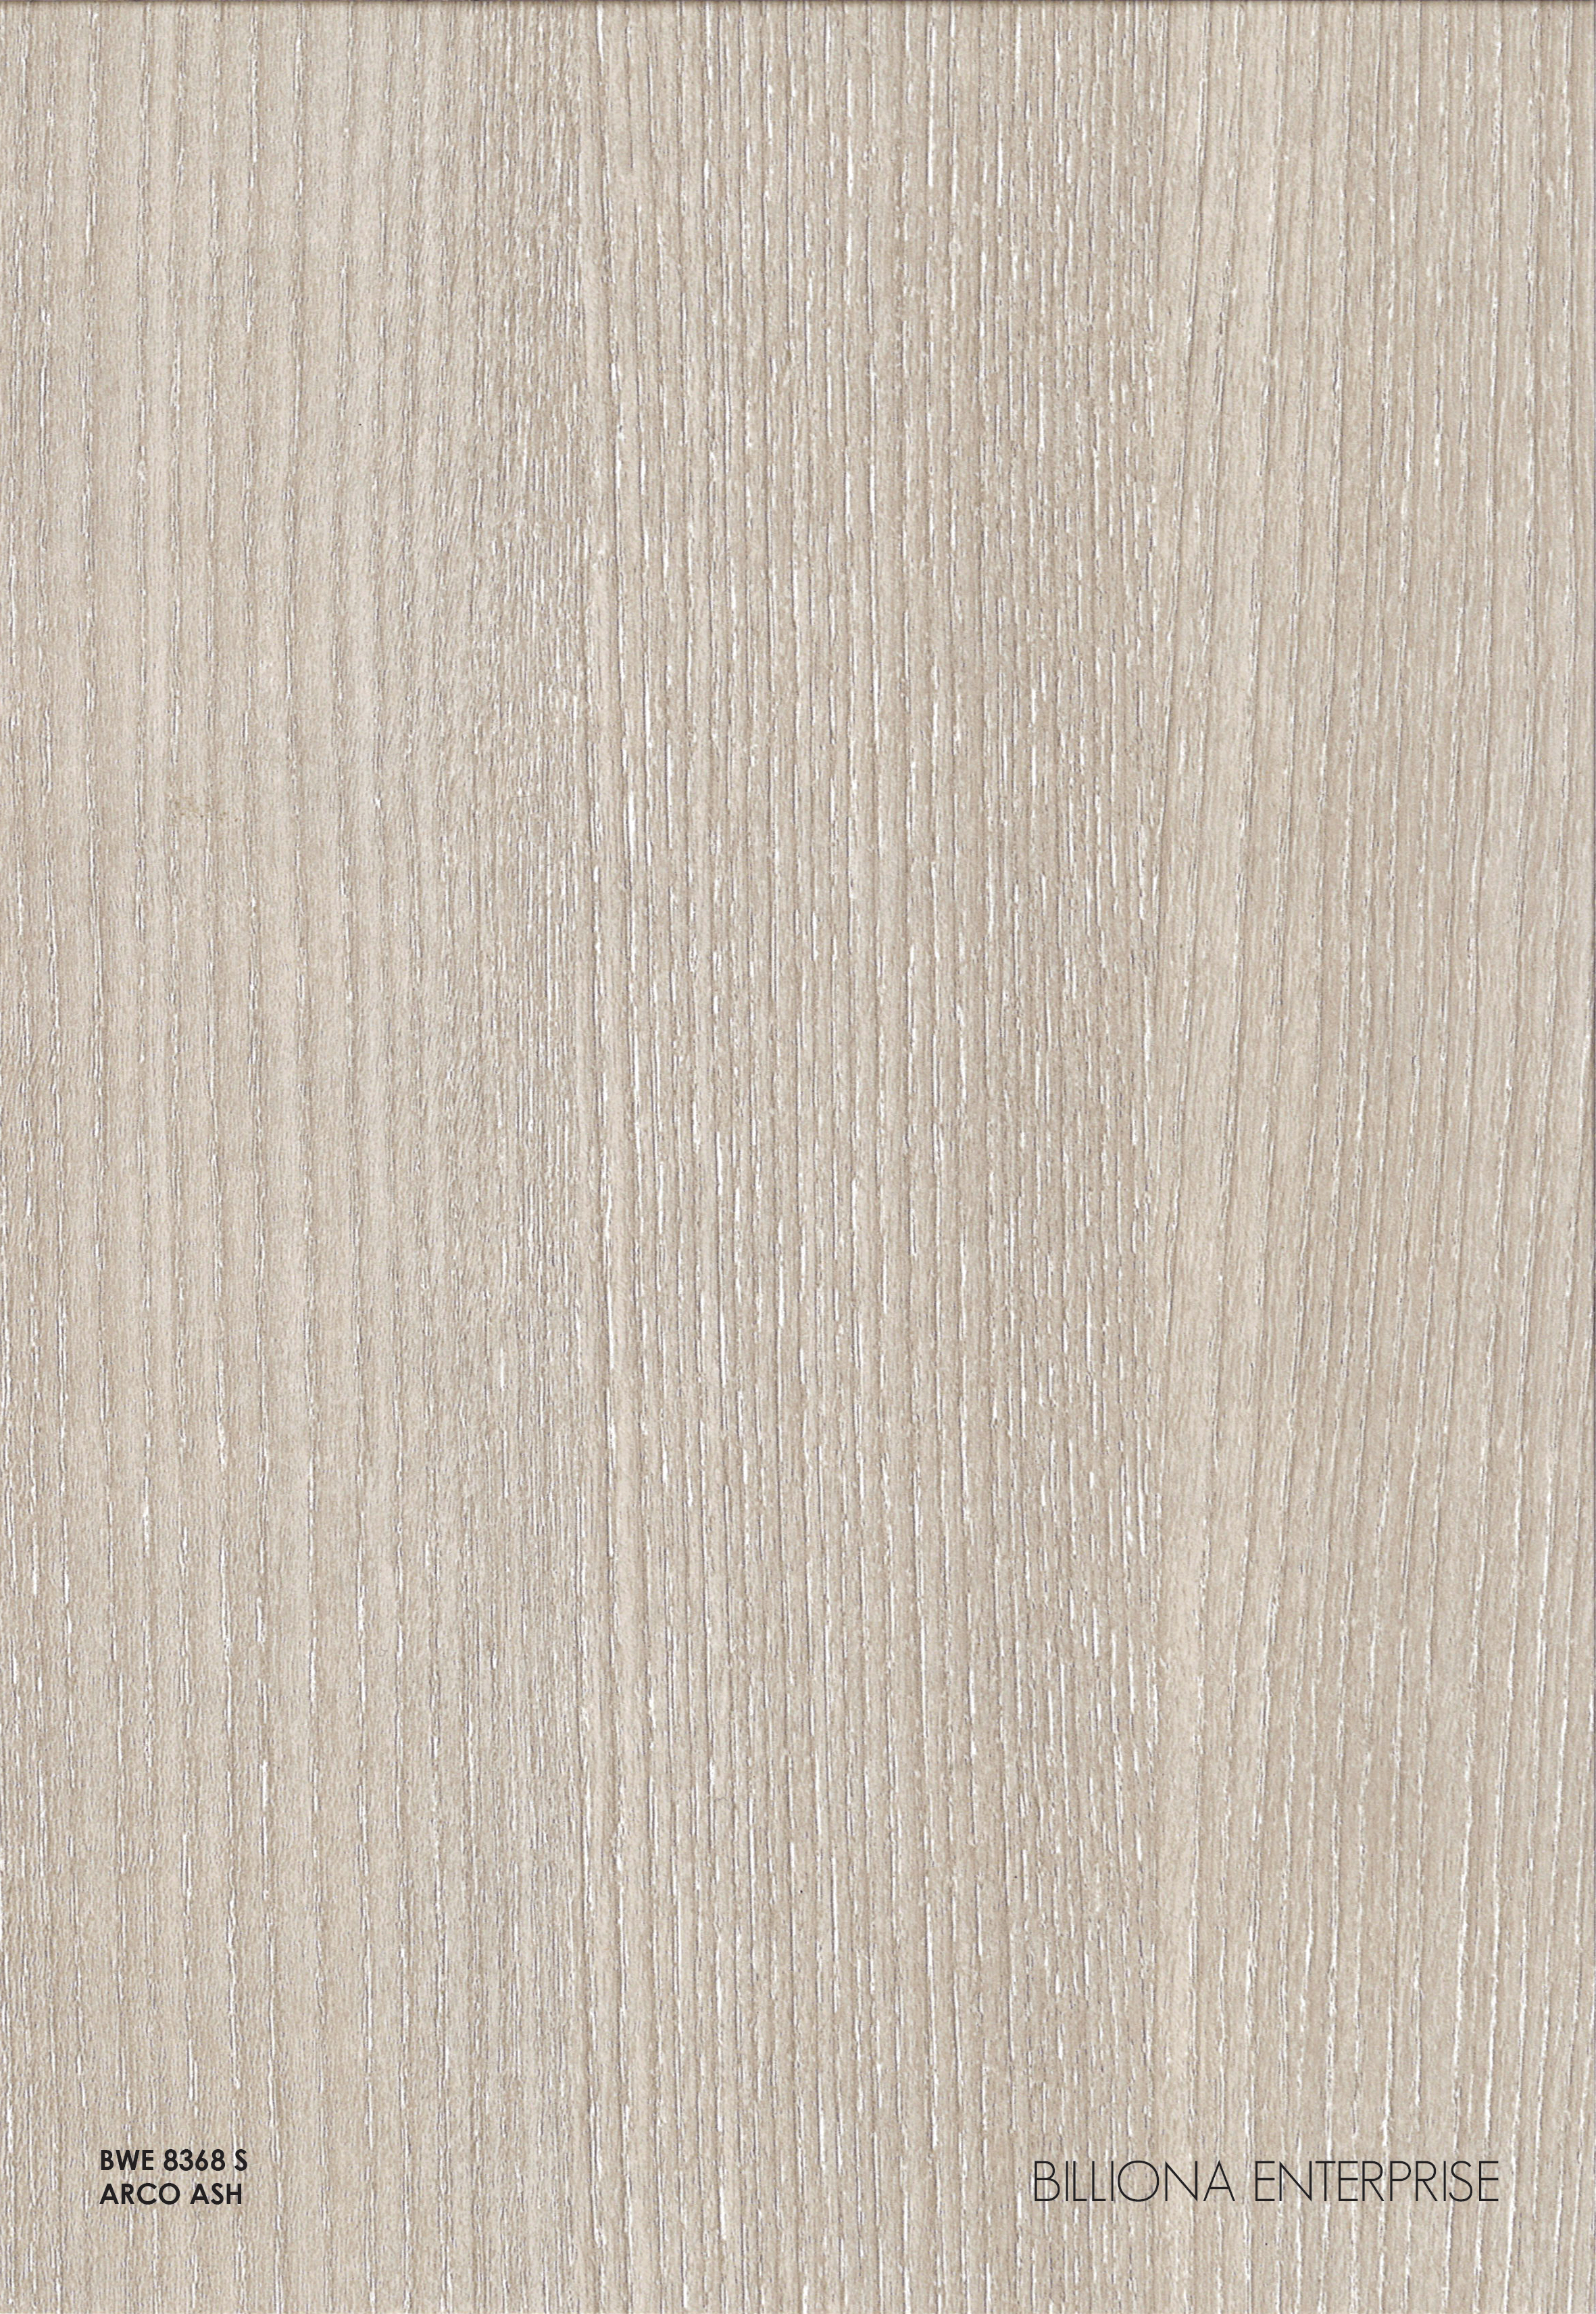 BWE 8368 S - Arco Ash, High Pressure Laminate (HPL), Billiona Enterprise Singapore